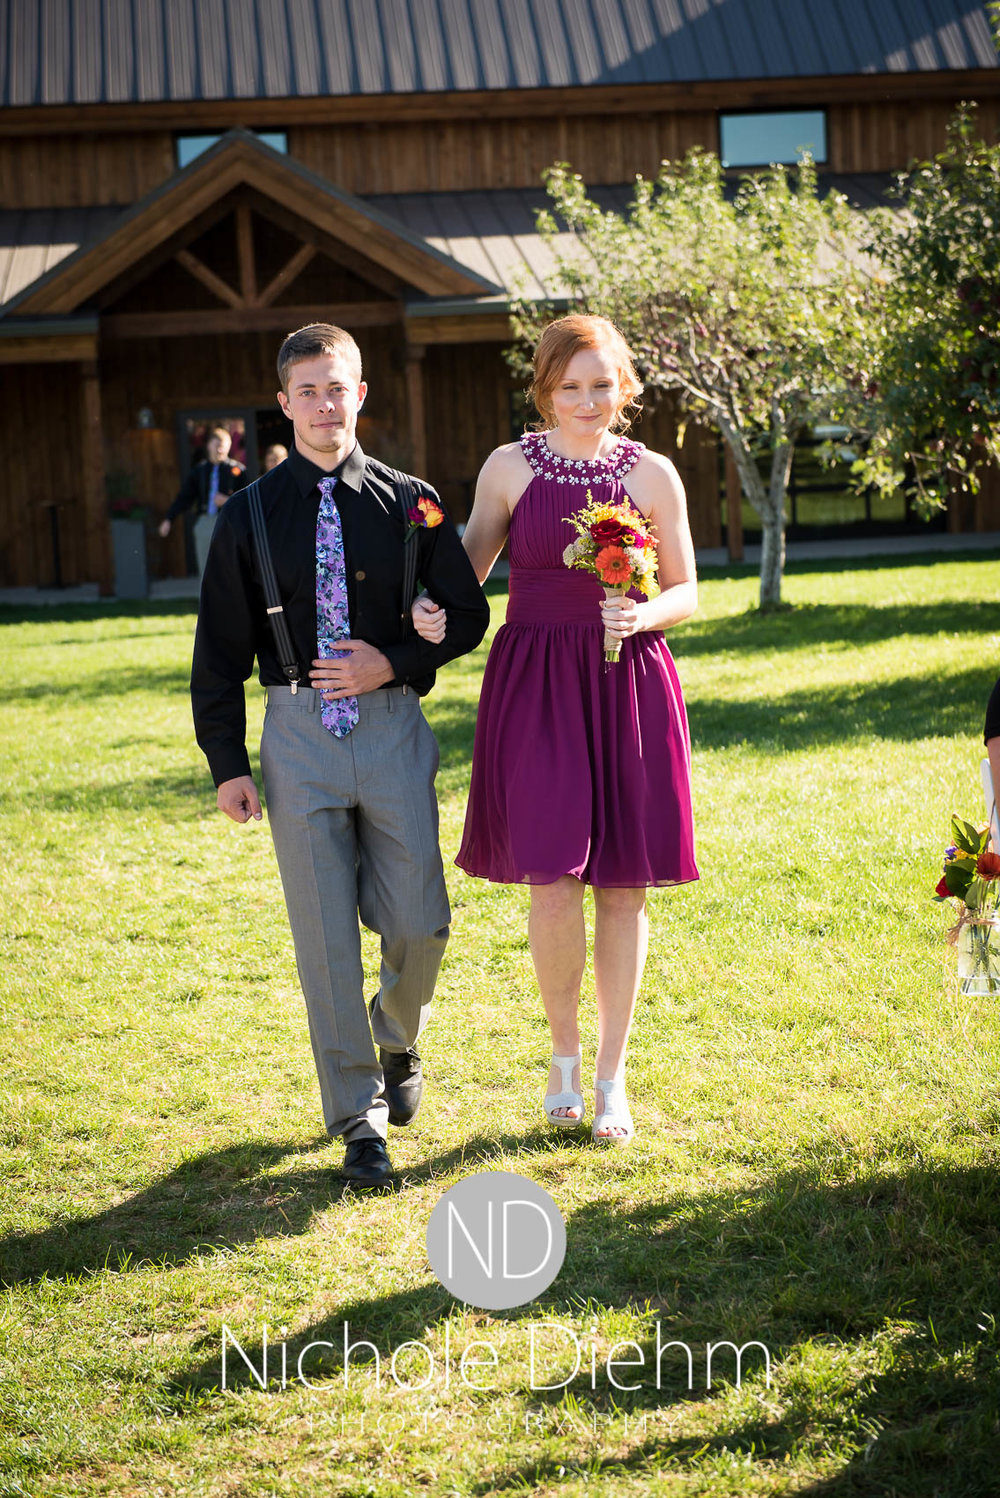 Cedar-Falls-Iowa-Wedding-Photographer-Sioux-Falls-South-Dakota-Emily-Stricklin-Jordy-Reinders-Meadow-Barn-Fall-Nichole-Diehm-Photography-Venue247.jpg